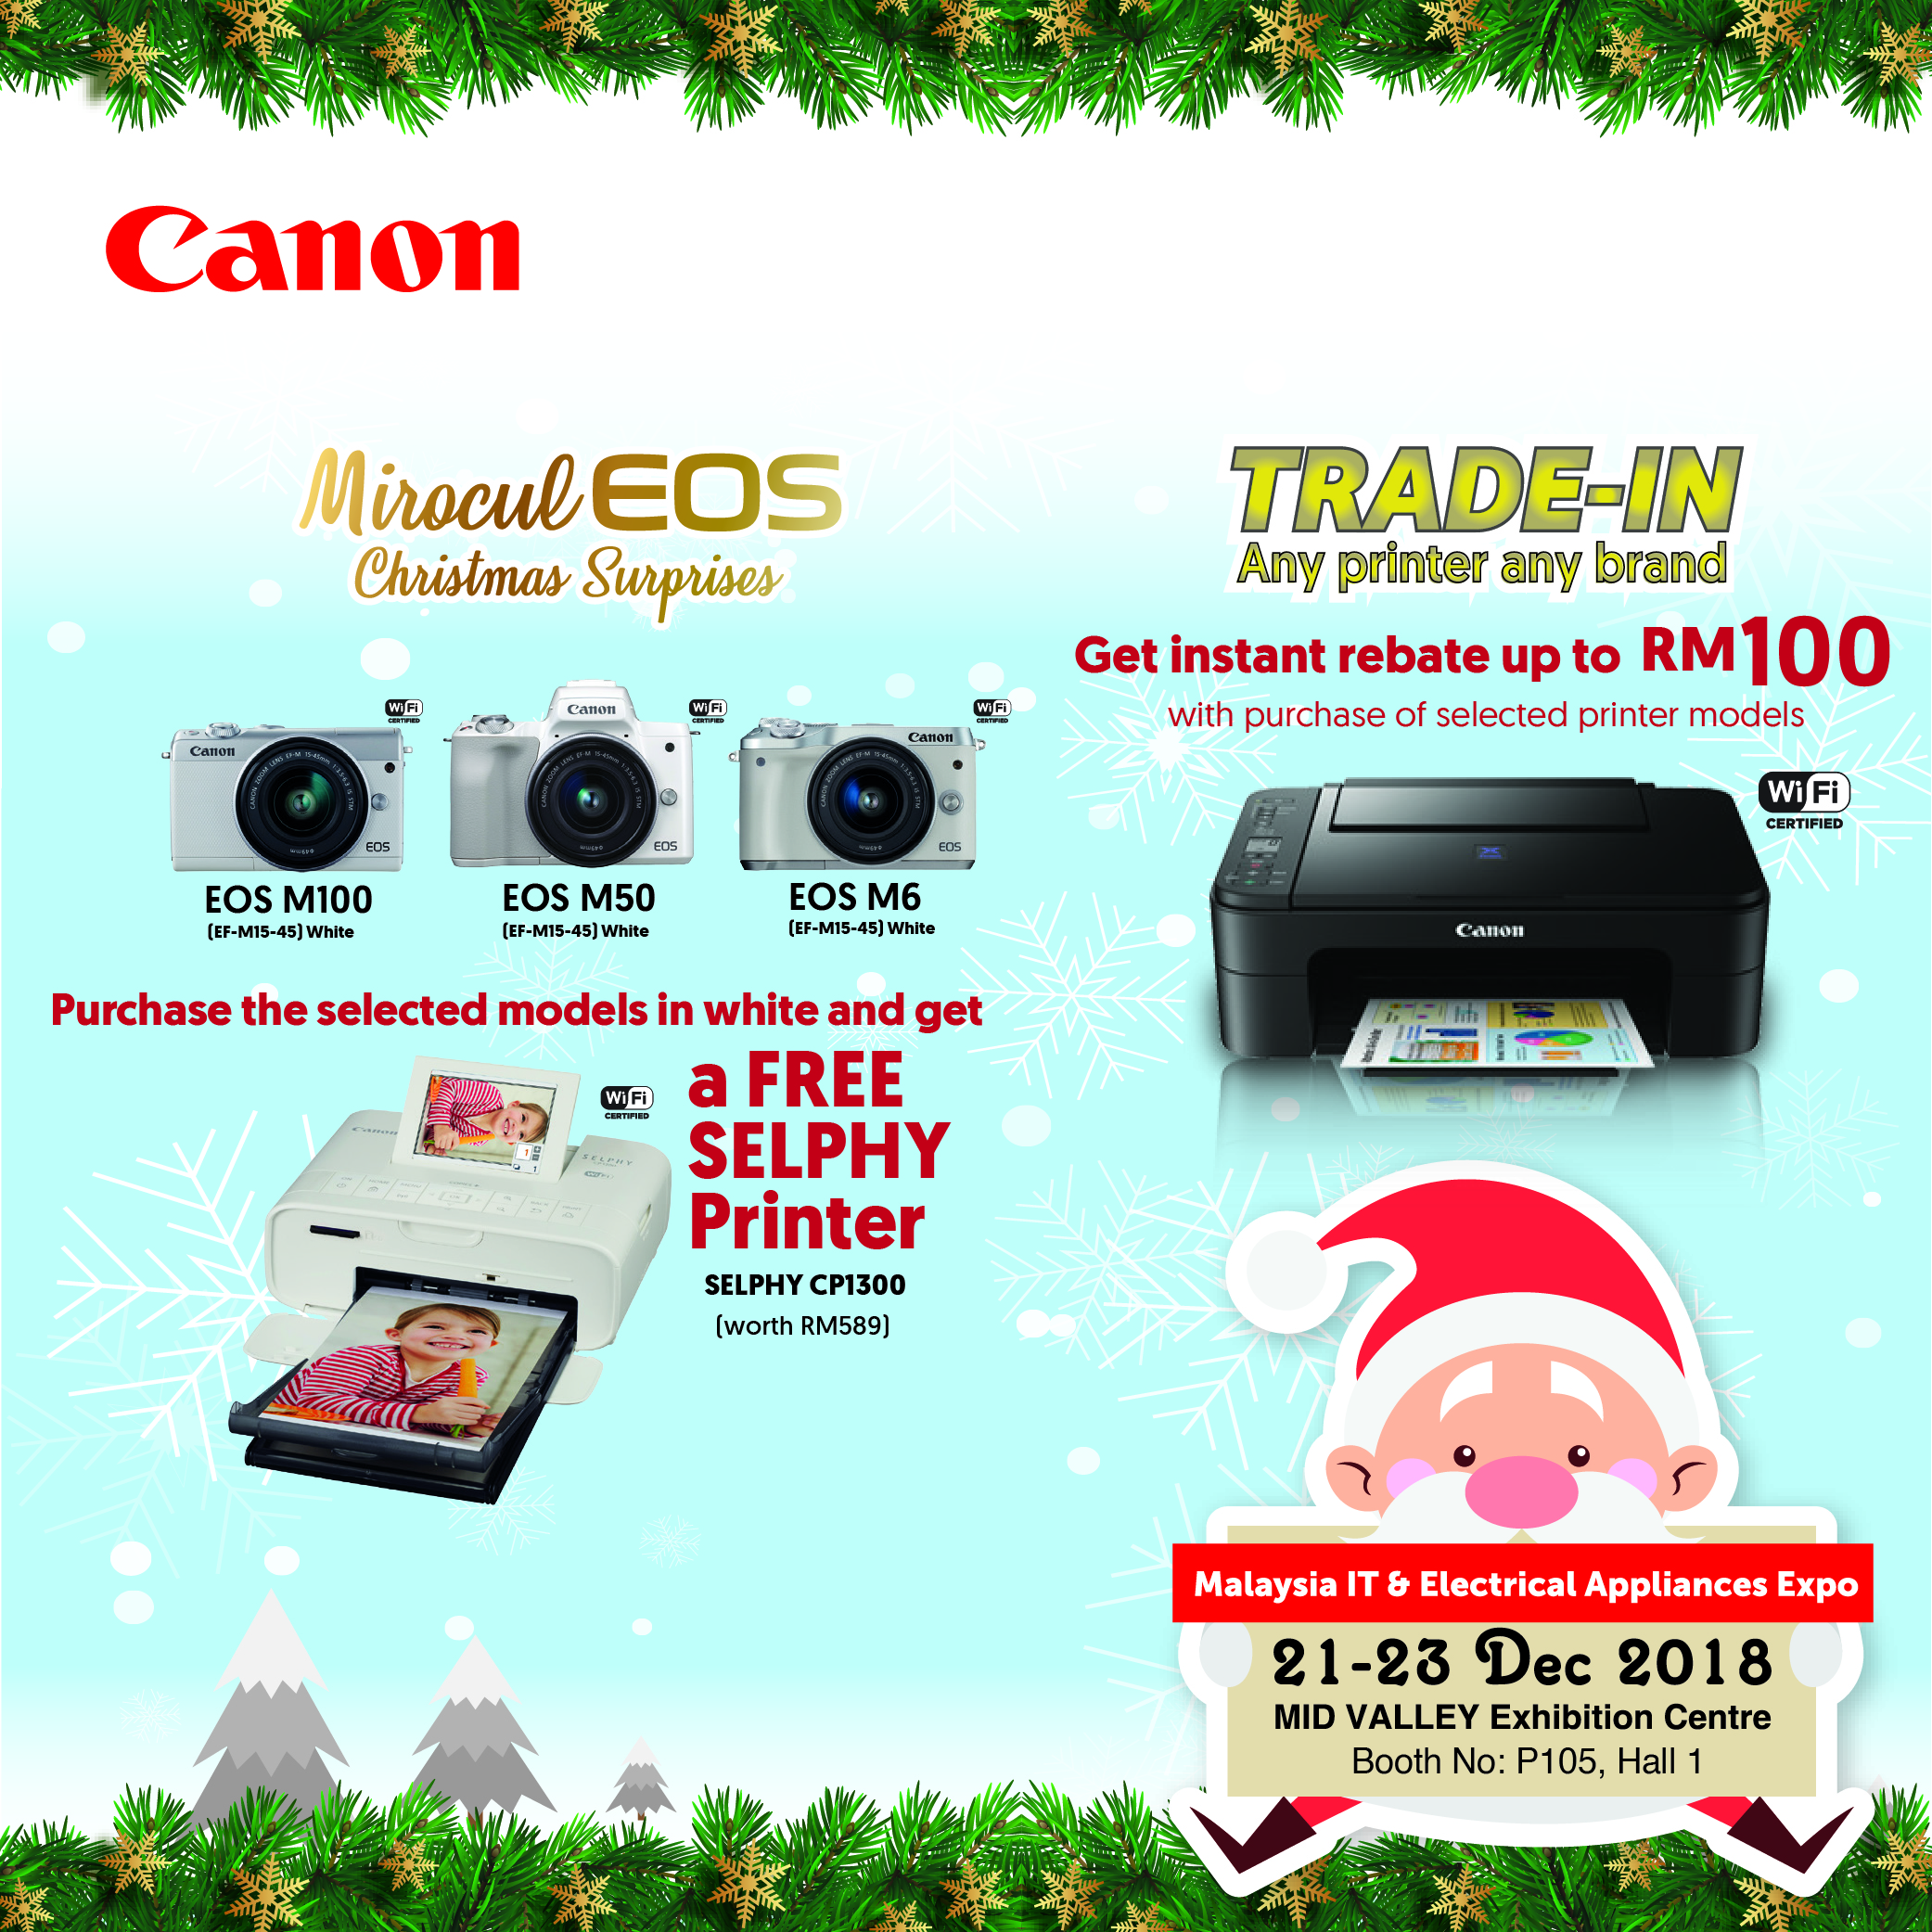 CANON PROMOTION @ MALAYSIA IT & ELECTRICAL APPLIANCES EXPO II KL